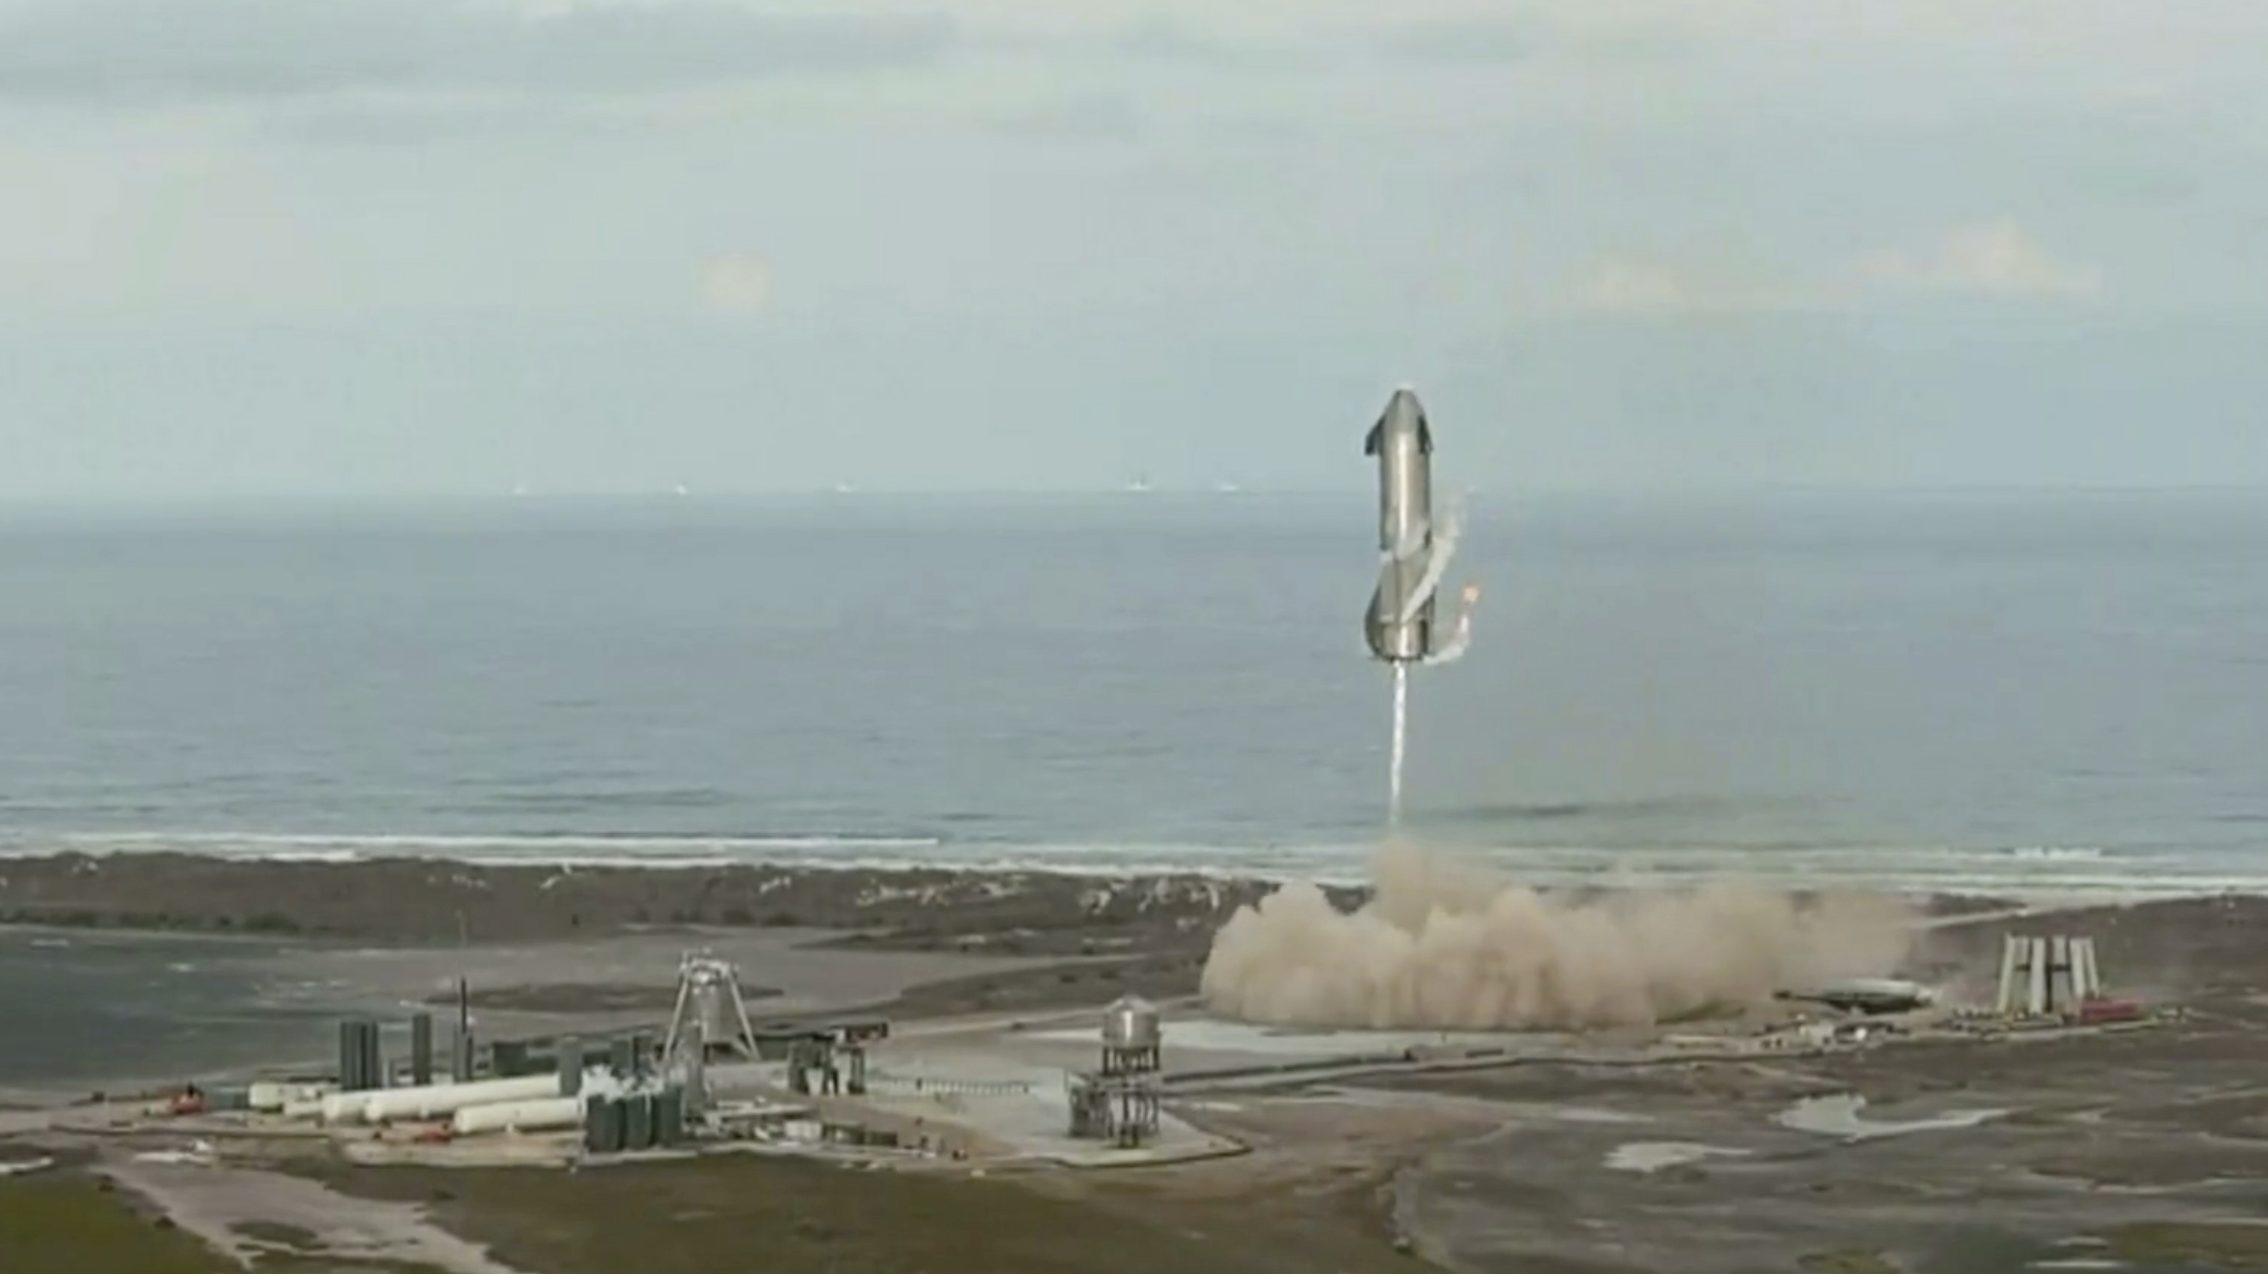 In this image from video made available by SpaceX, one of the company's Starship prototypes fires its thrusters as it lands during a test in Boca Chica, Texas, on March 3, 2021. SpaceX's futuristic Starship looked like it aced a touchdown, but then exploded on the landing pad with so much force that it was hurled into the air.